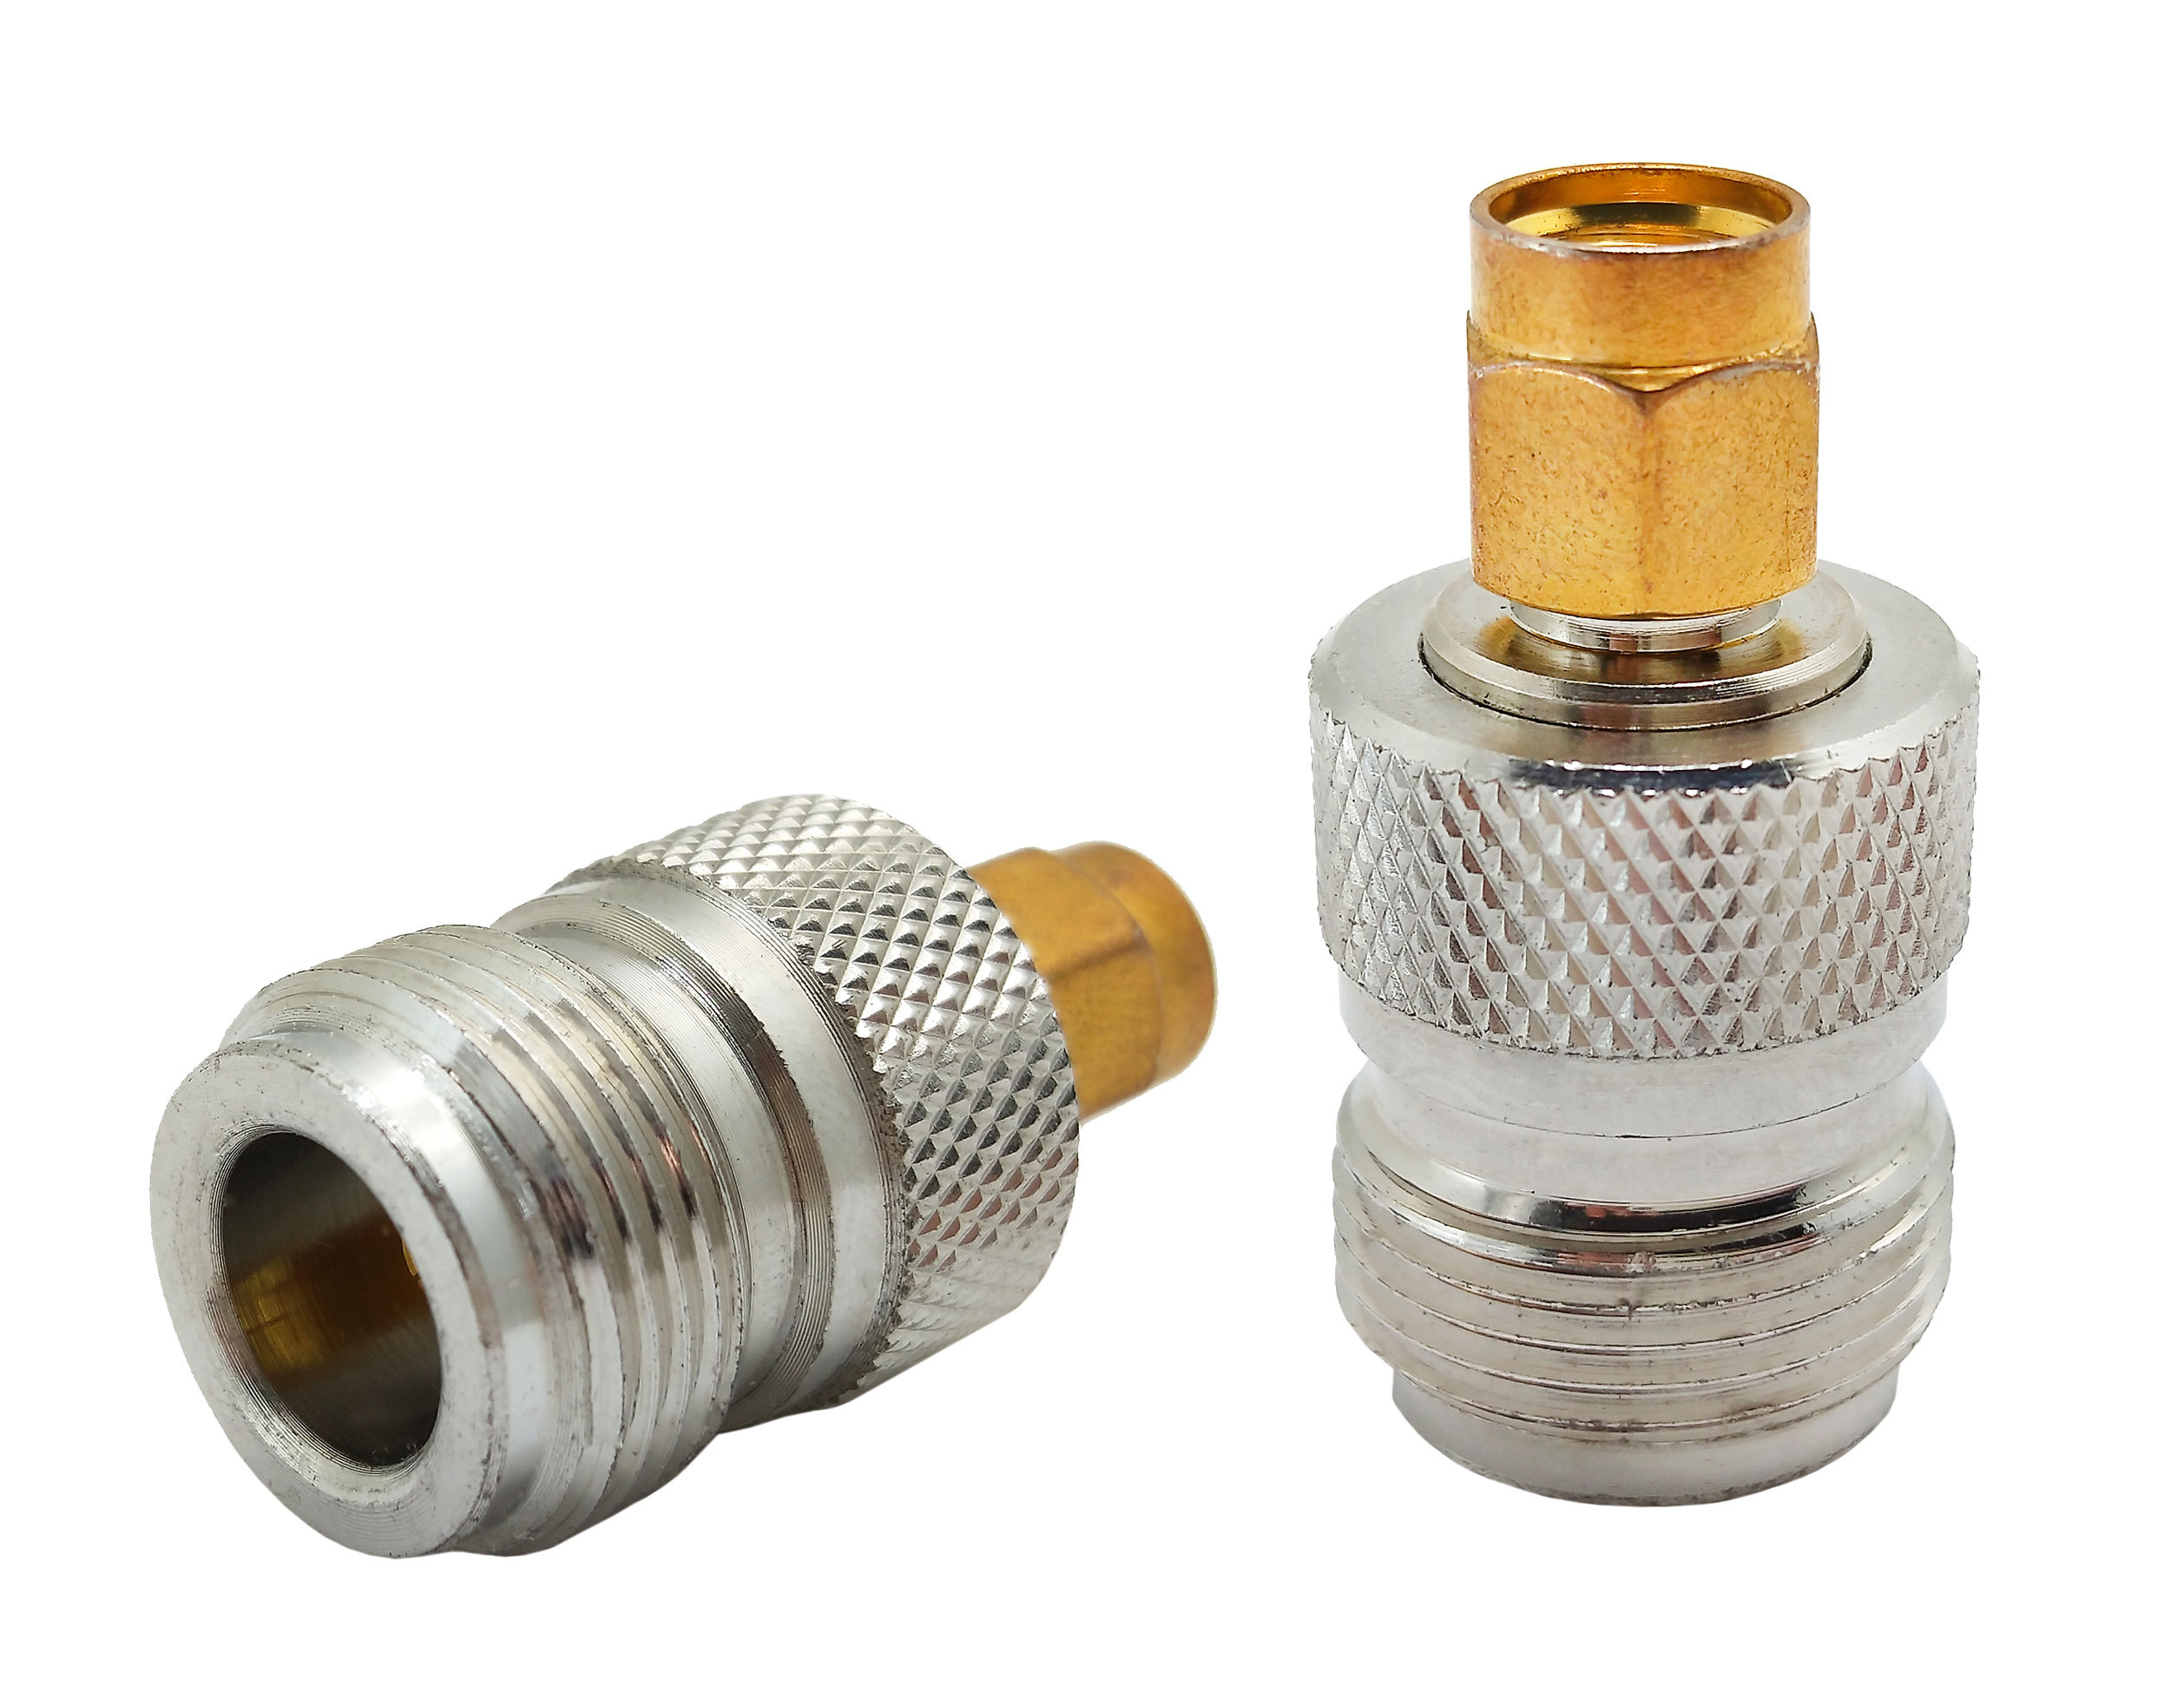 50Ohm rf Coaxial Connector N Female to RP-SMA rp-sma Type Male Plug Adapter